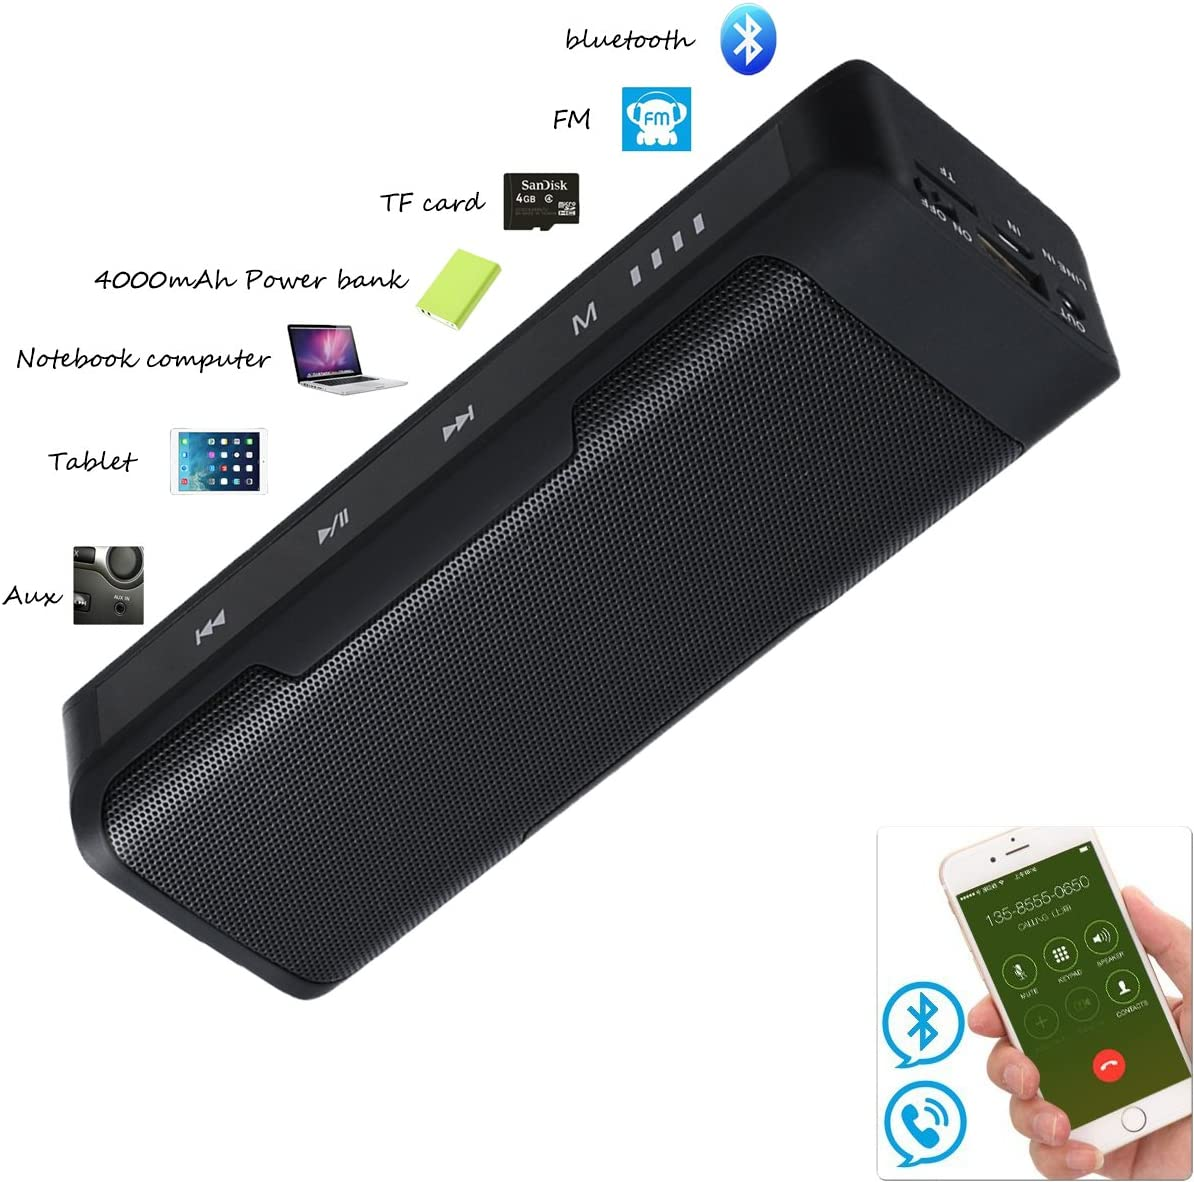 can iphone connect to multiple bluetooth speakers